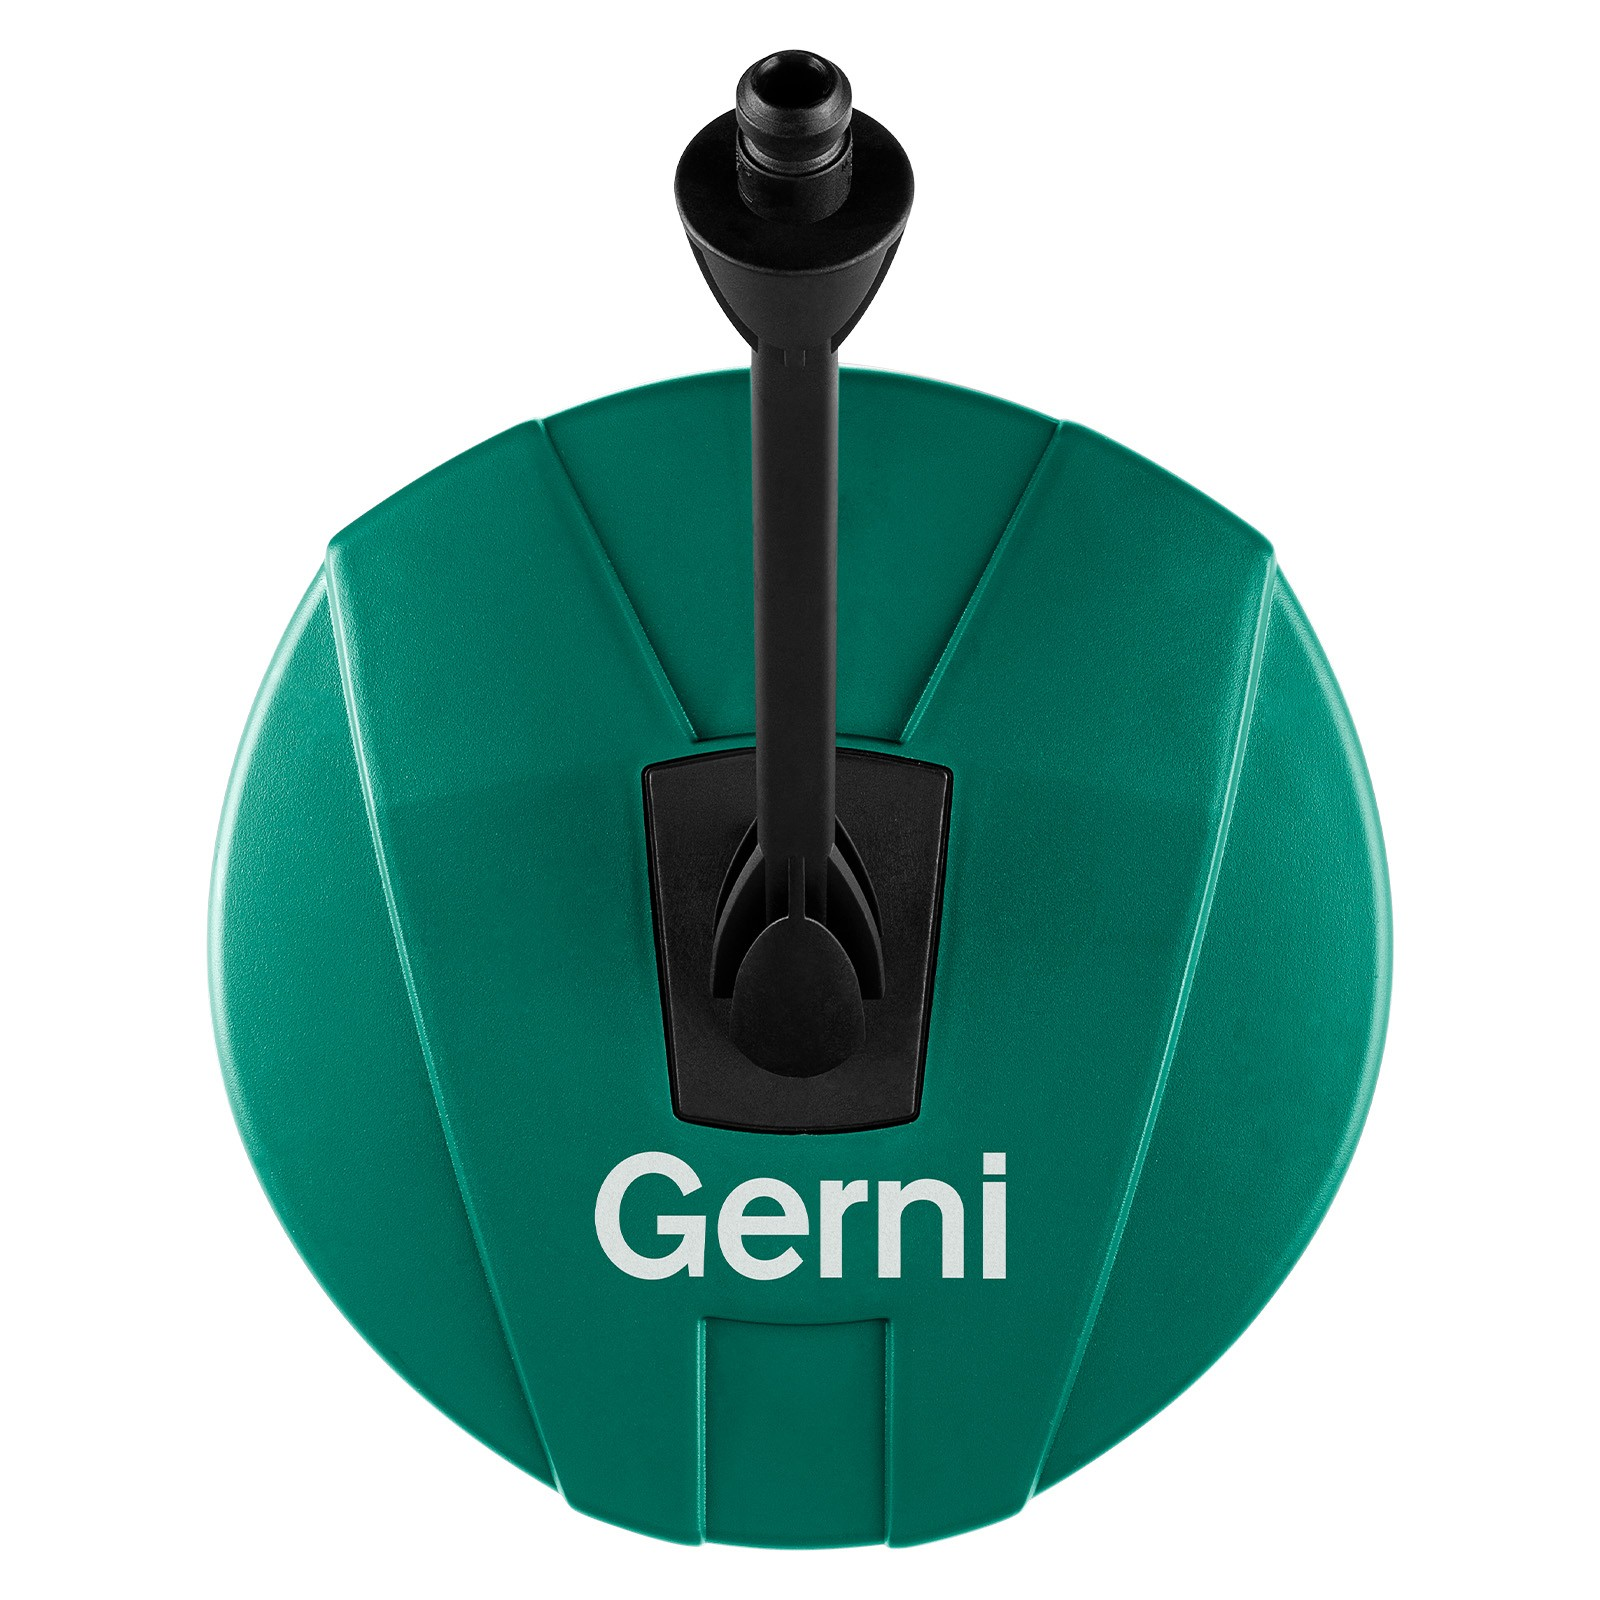 Gerni Classic Patio Cleaner - Top